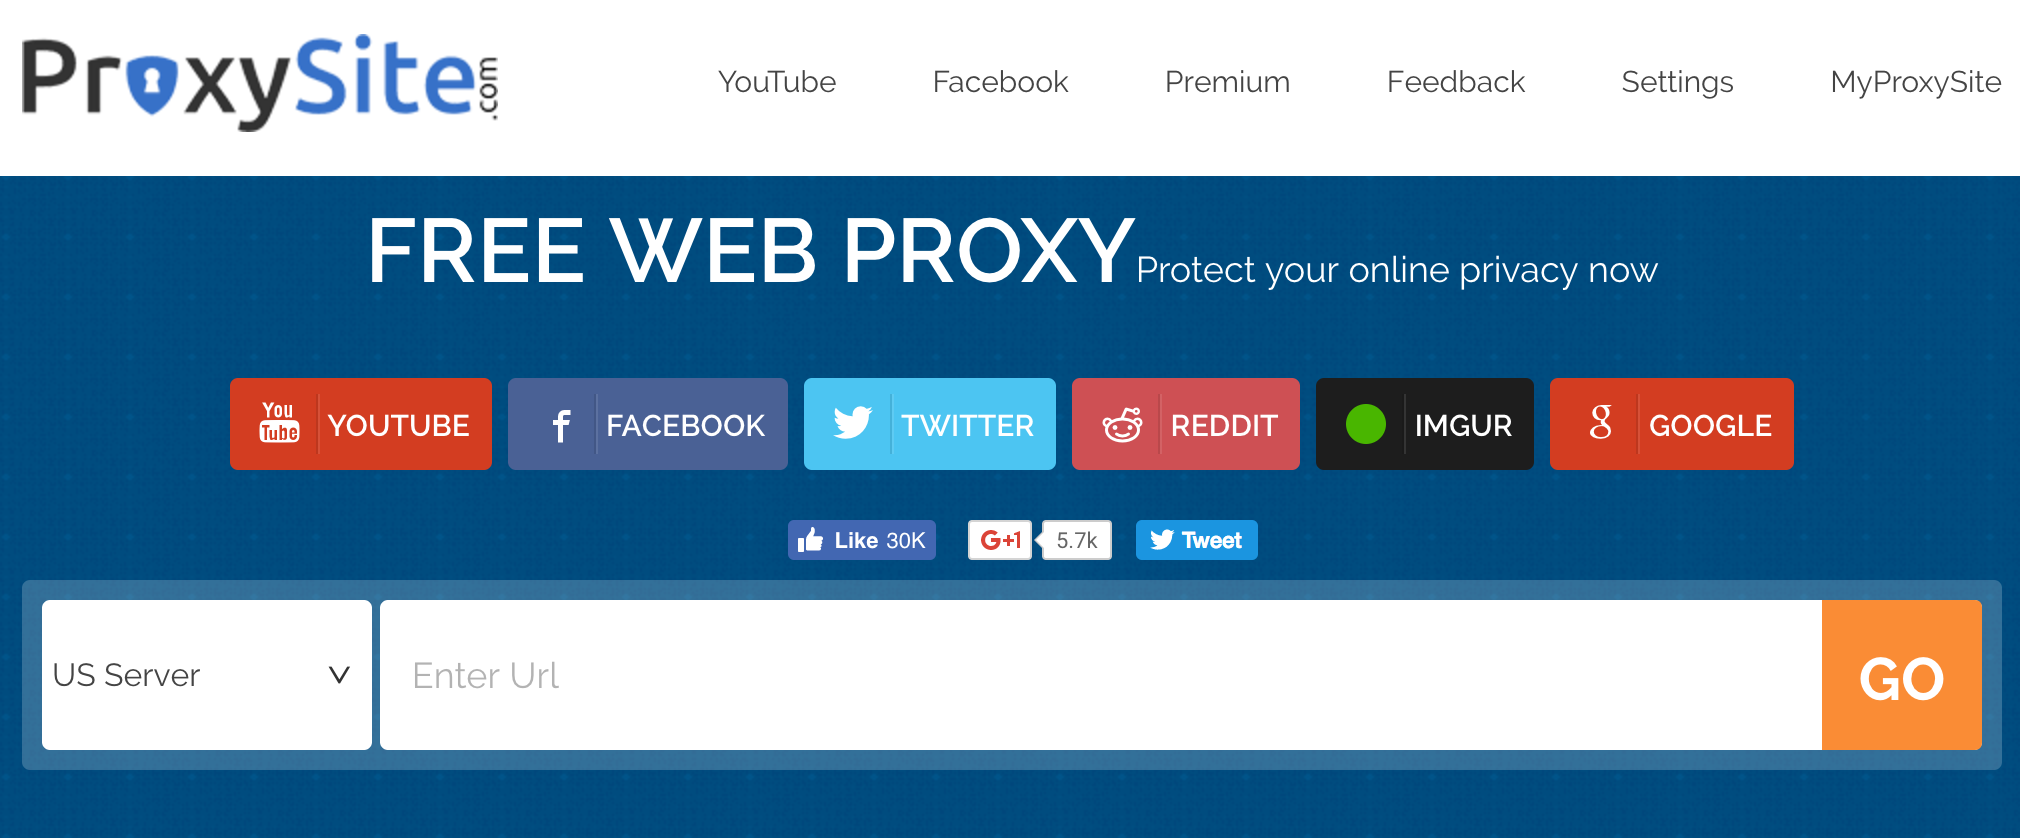 7 Best Video Streaming Proxies That You Should Know